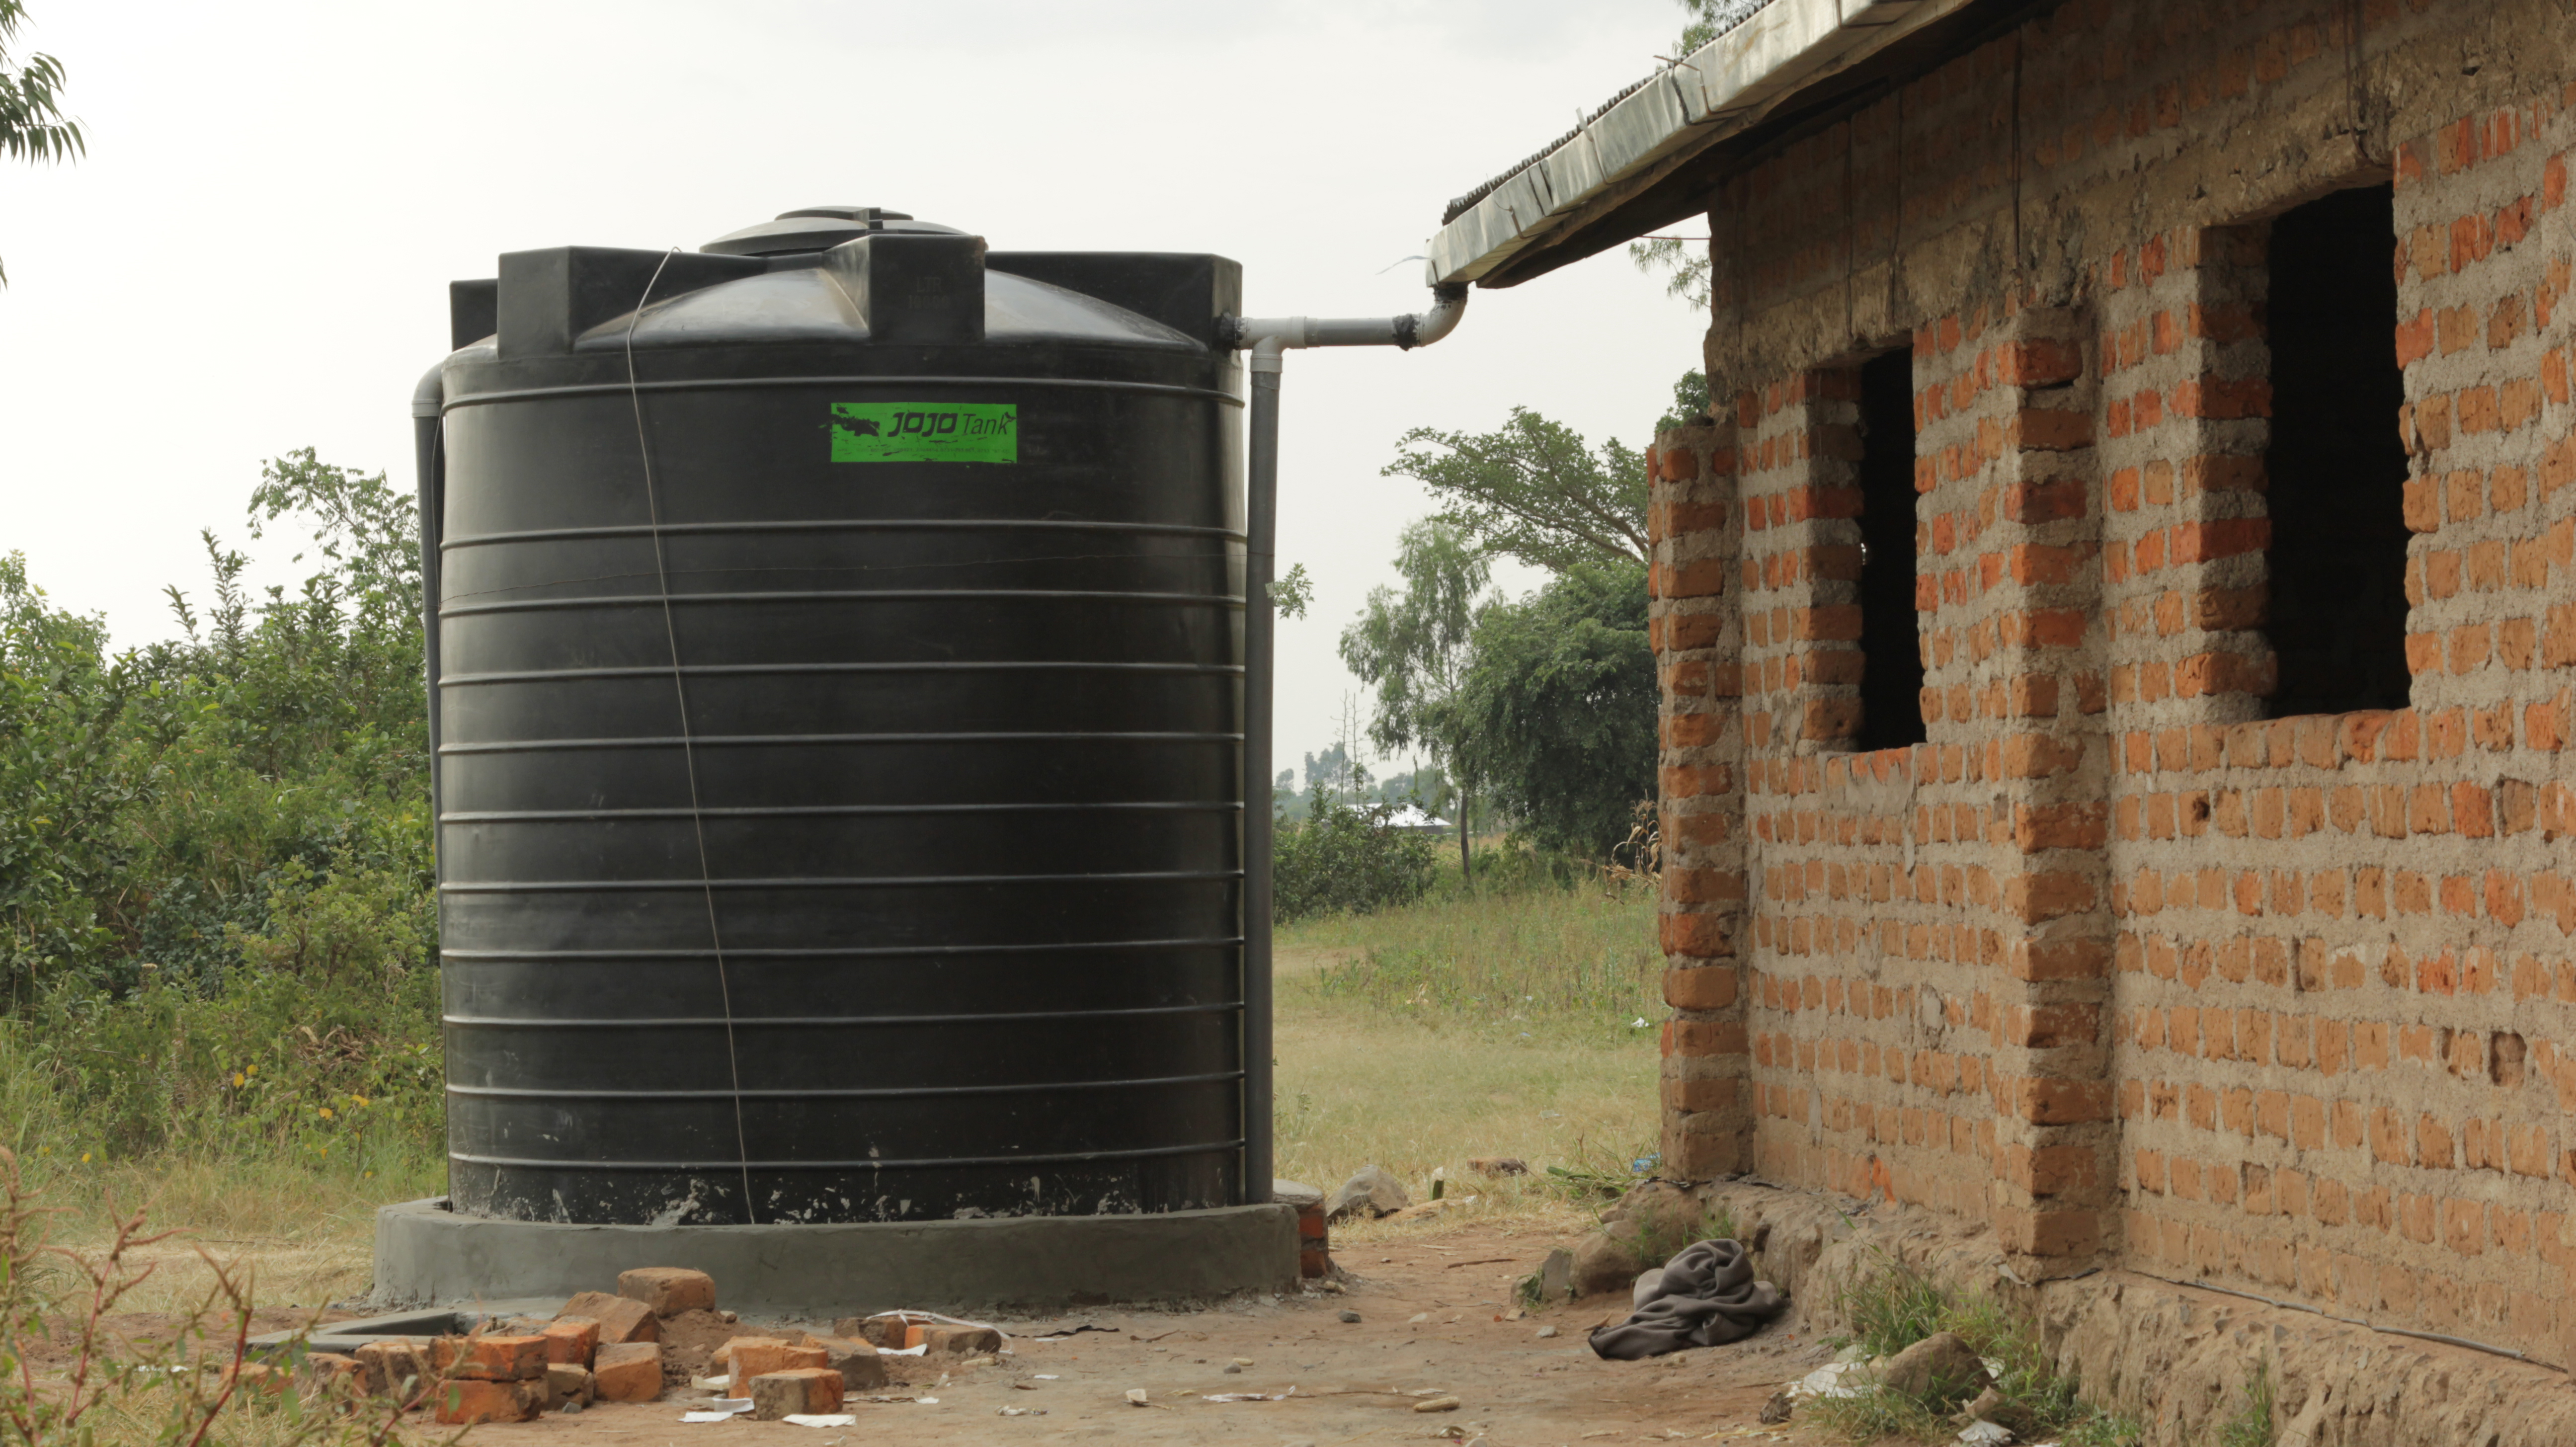 Incidental treatment trains in urban rainwater harvesting systems